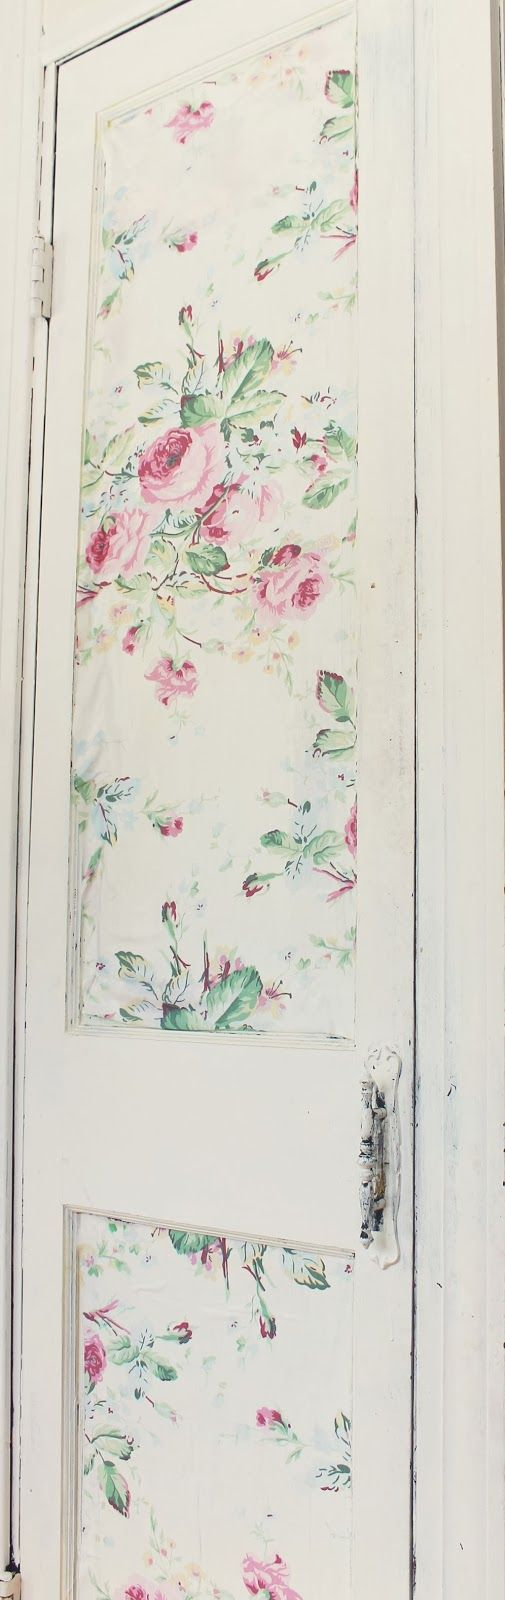 Victoria ModPodged fabric on the door of her pantry.  Trois Petites Filles: Home Goods addiction and fabric wall treatment